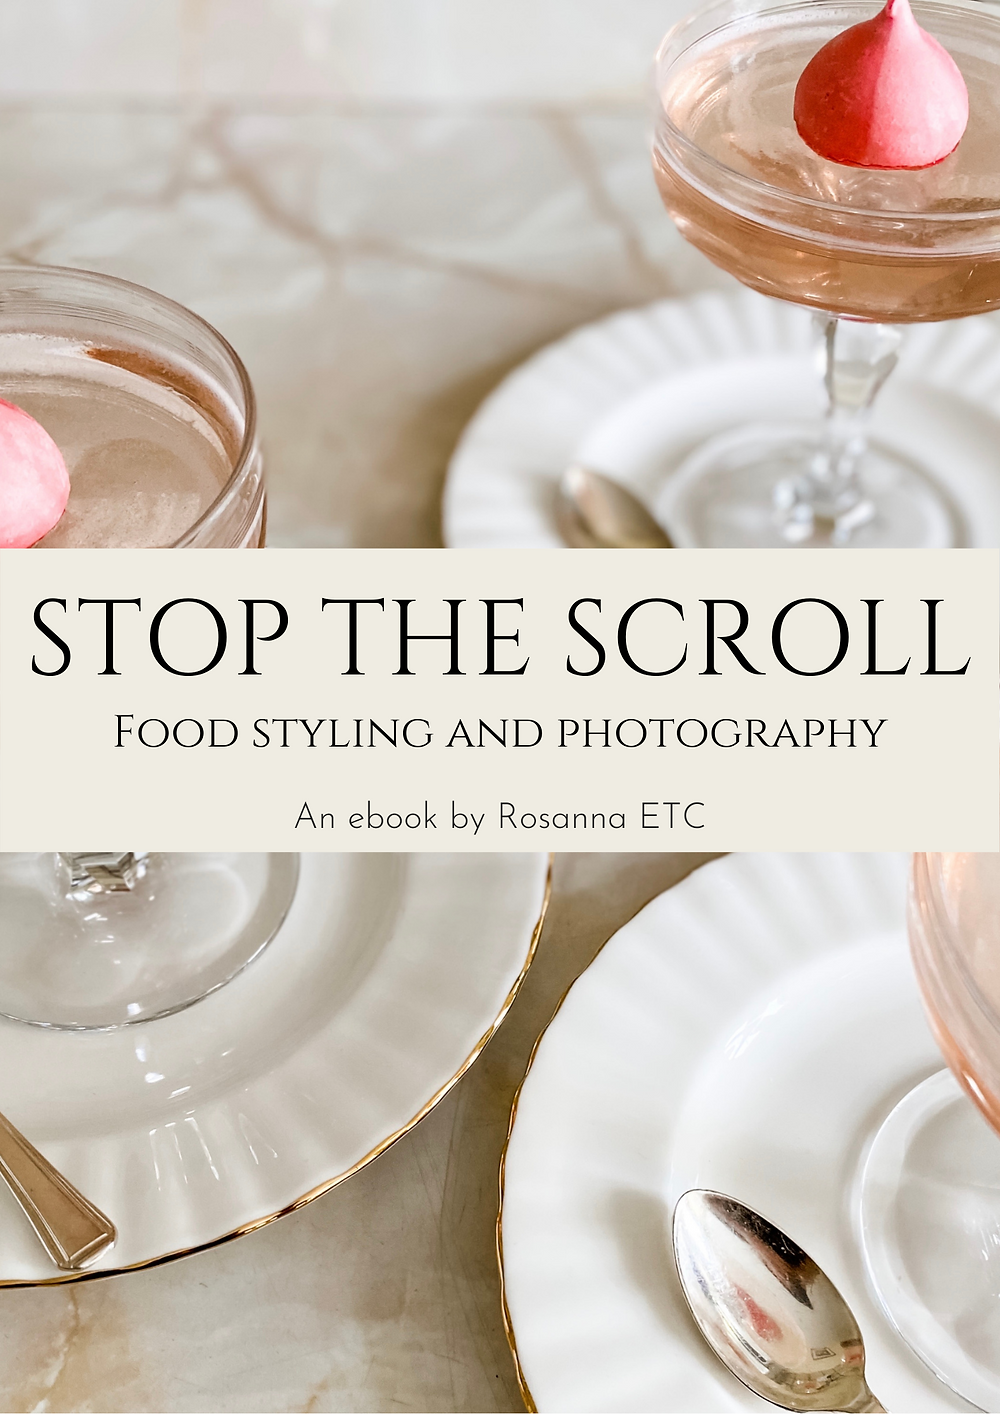 Front cover of Rosanna ETC ebook Stop the Scroll